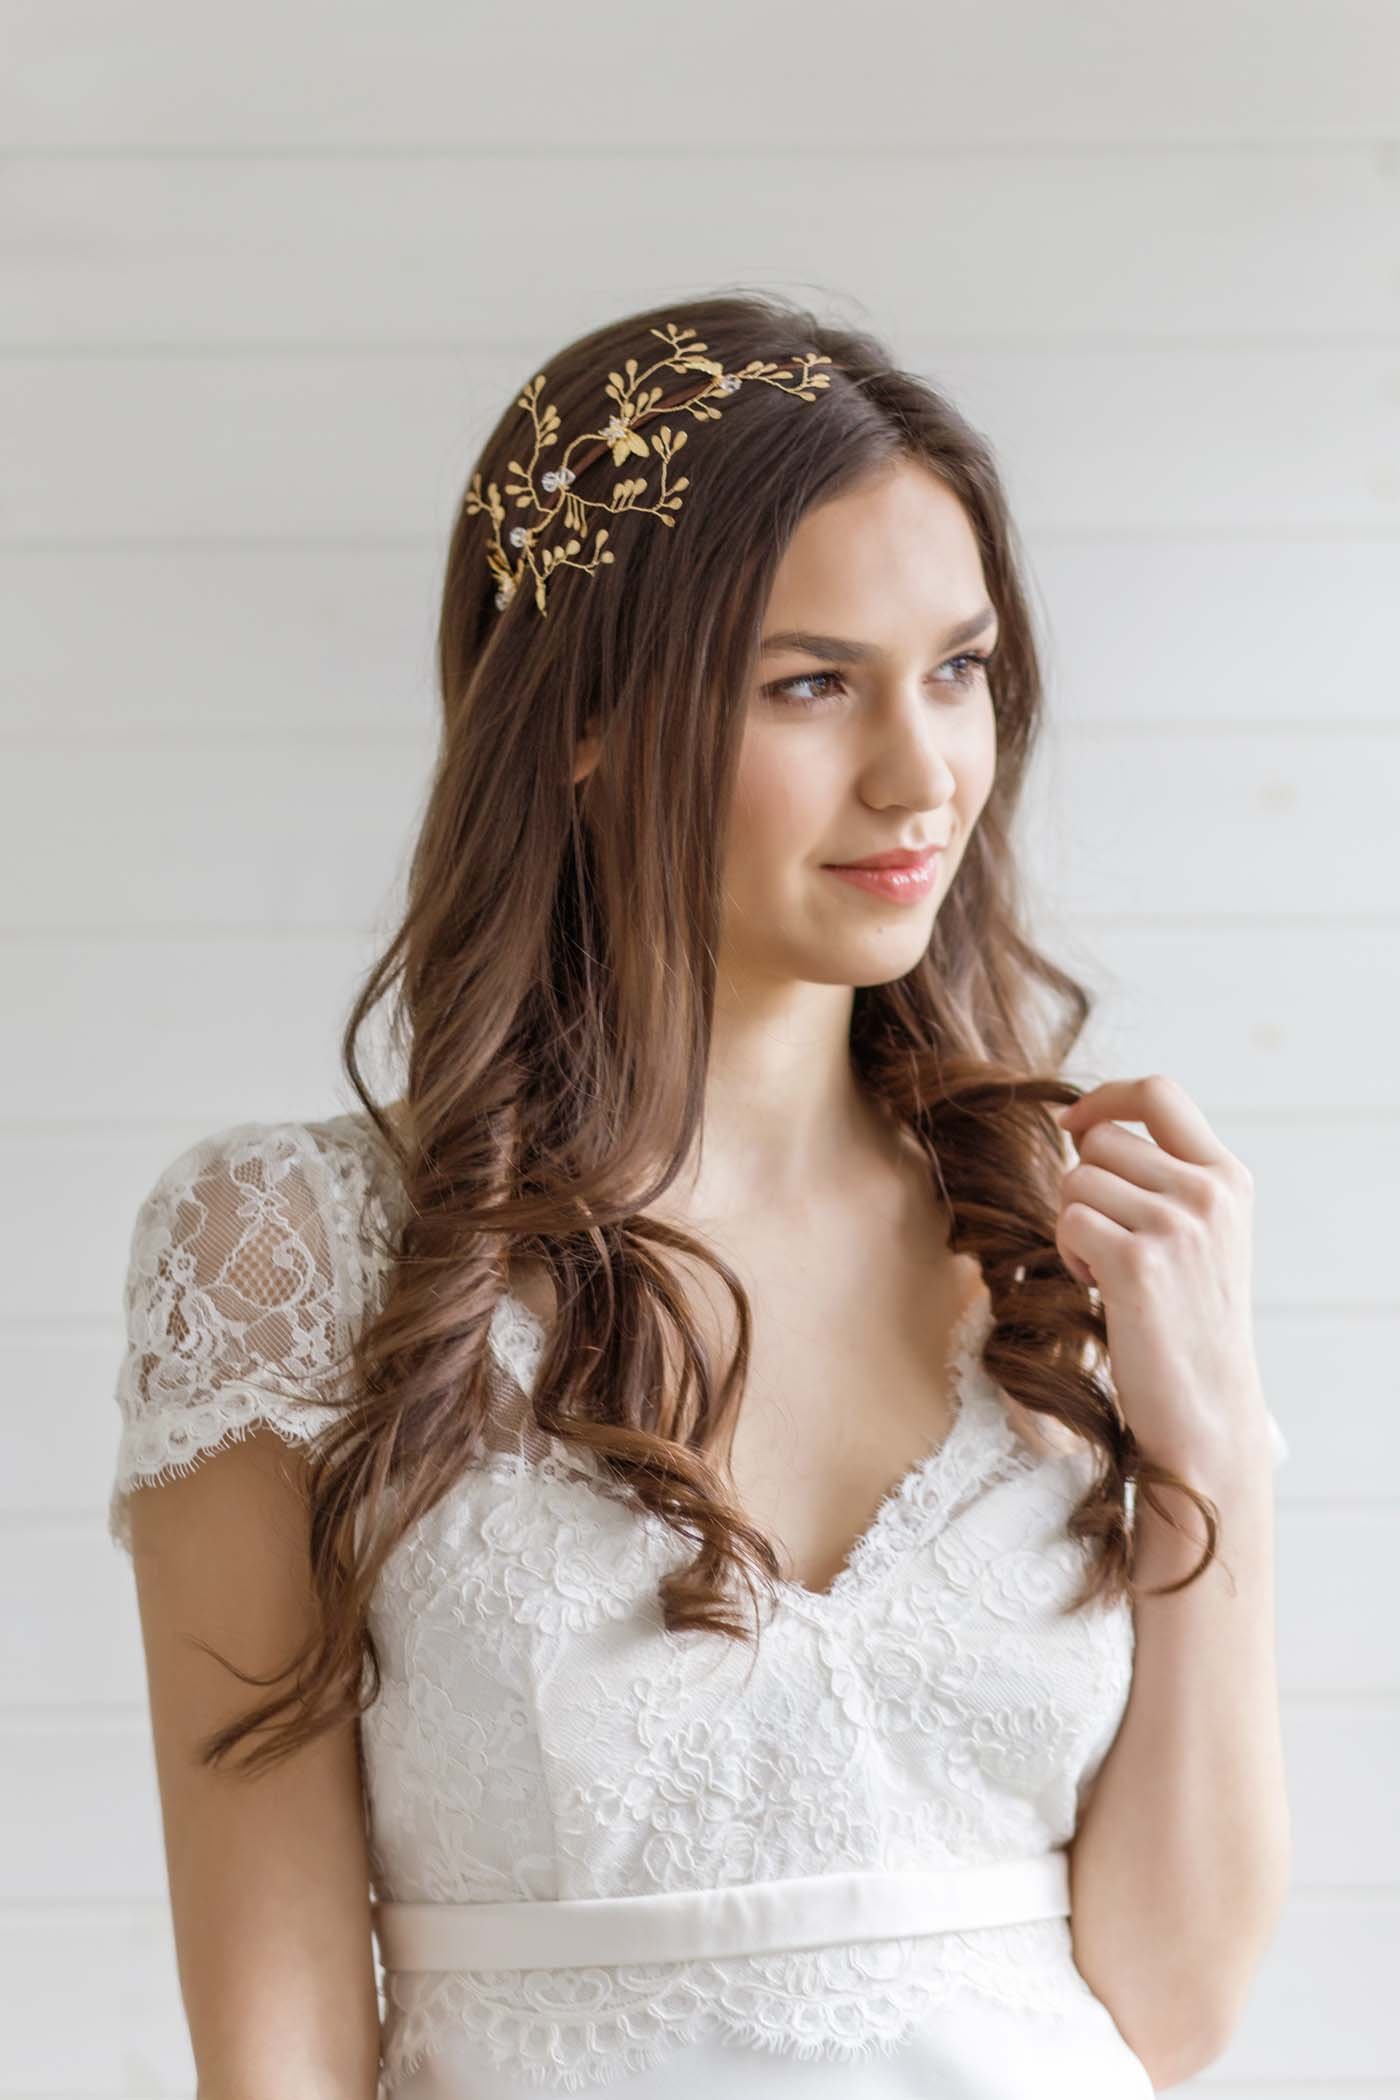 images 5 BEAUTIFUL BRIDAL HAIR ACCESSORIES